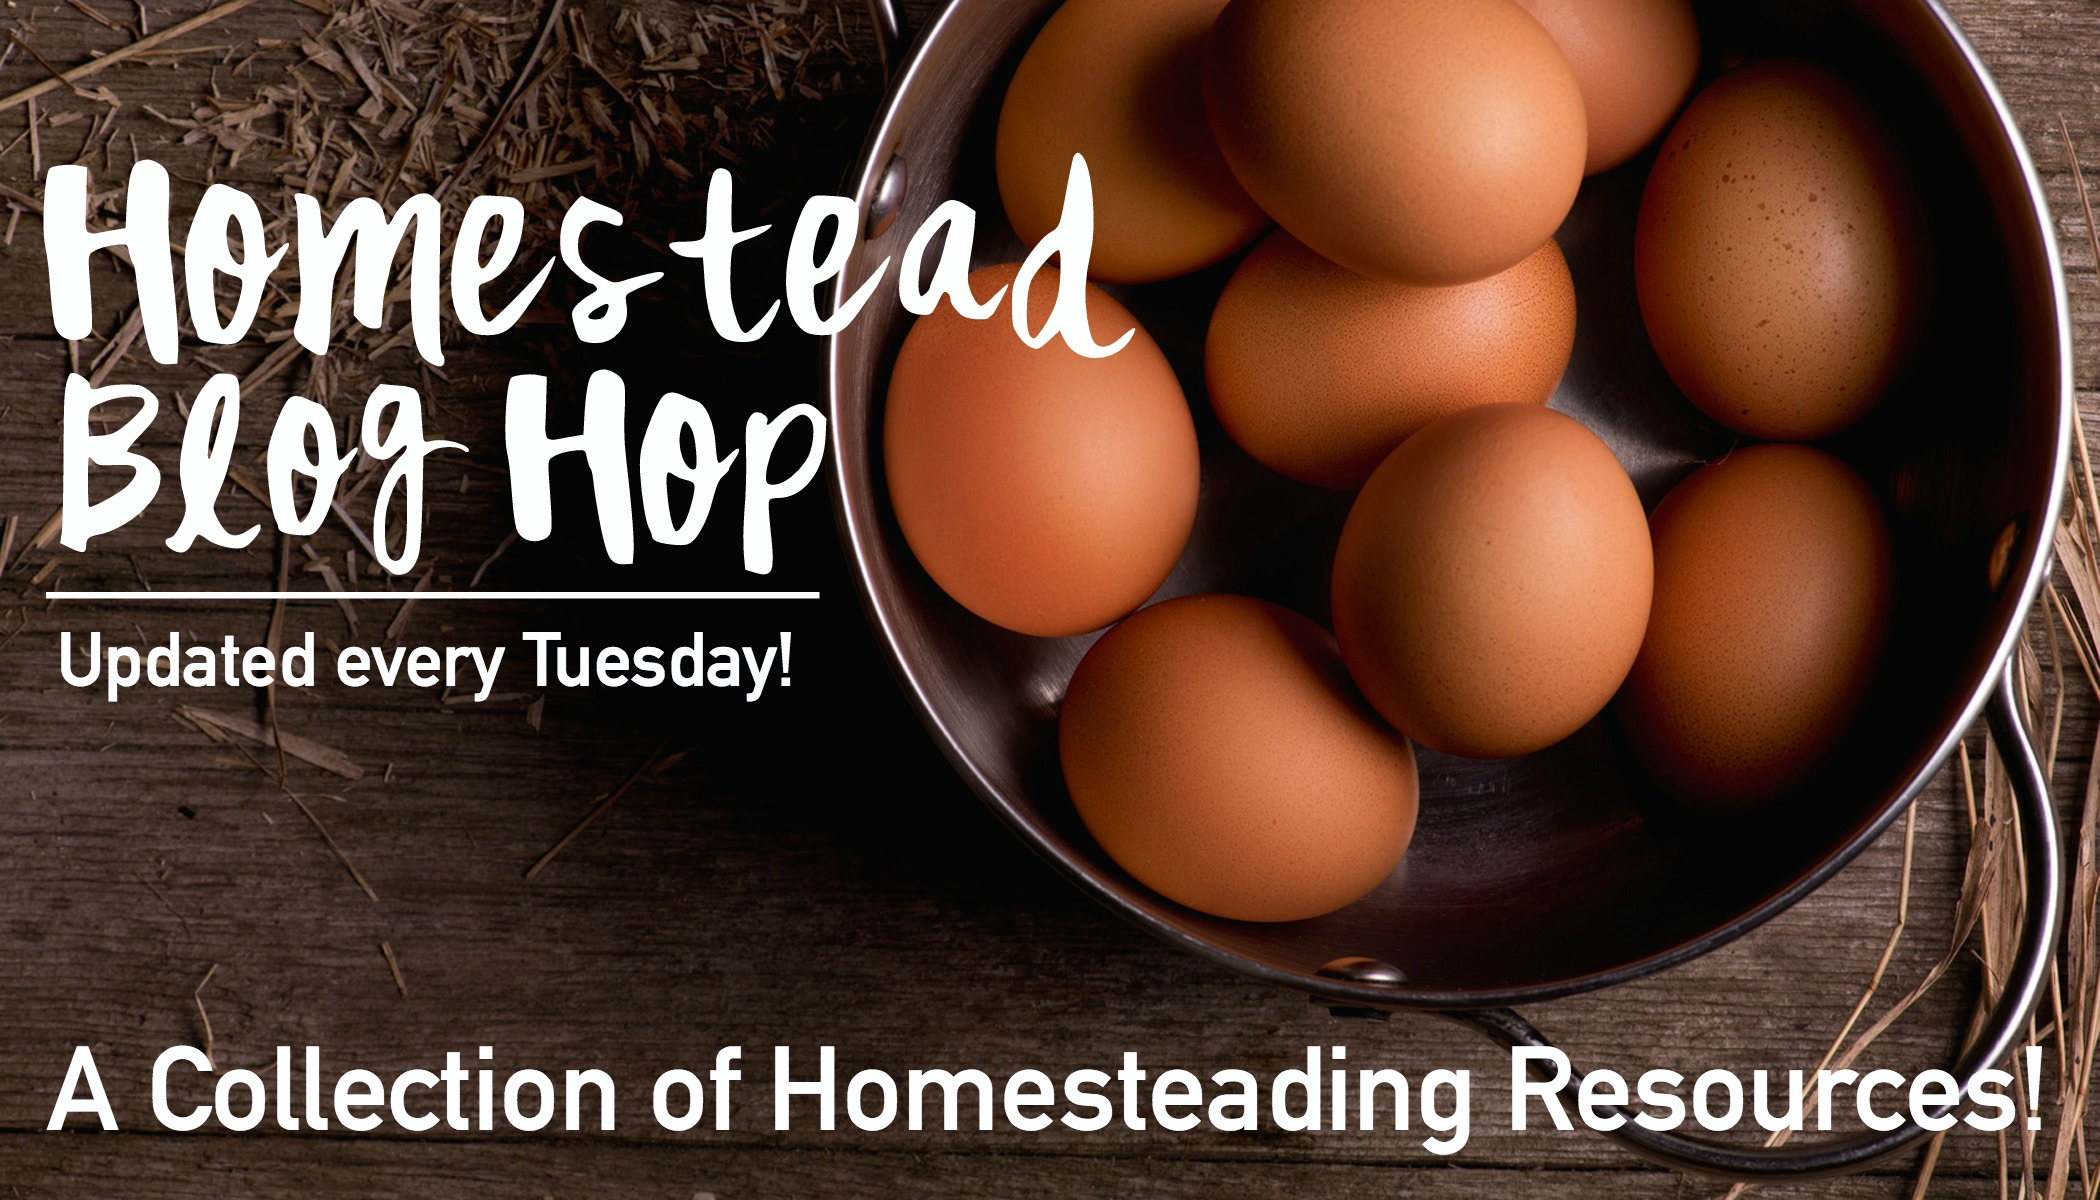 Homestead Blog Hop Whole Fed Homestead